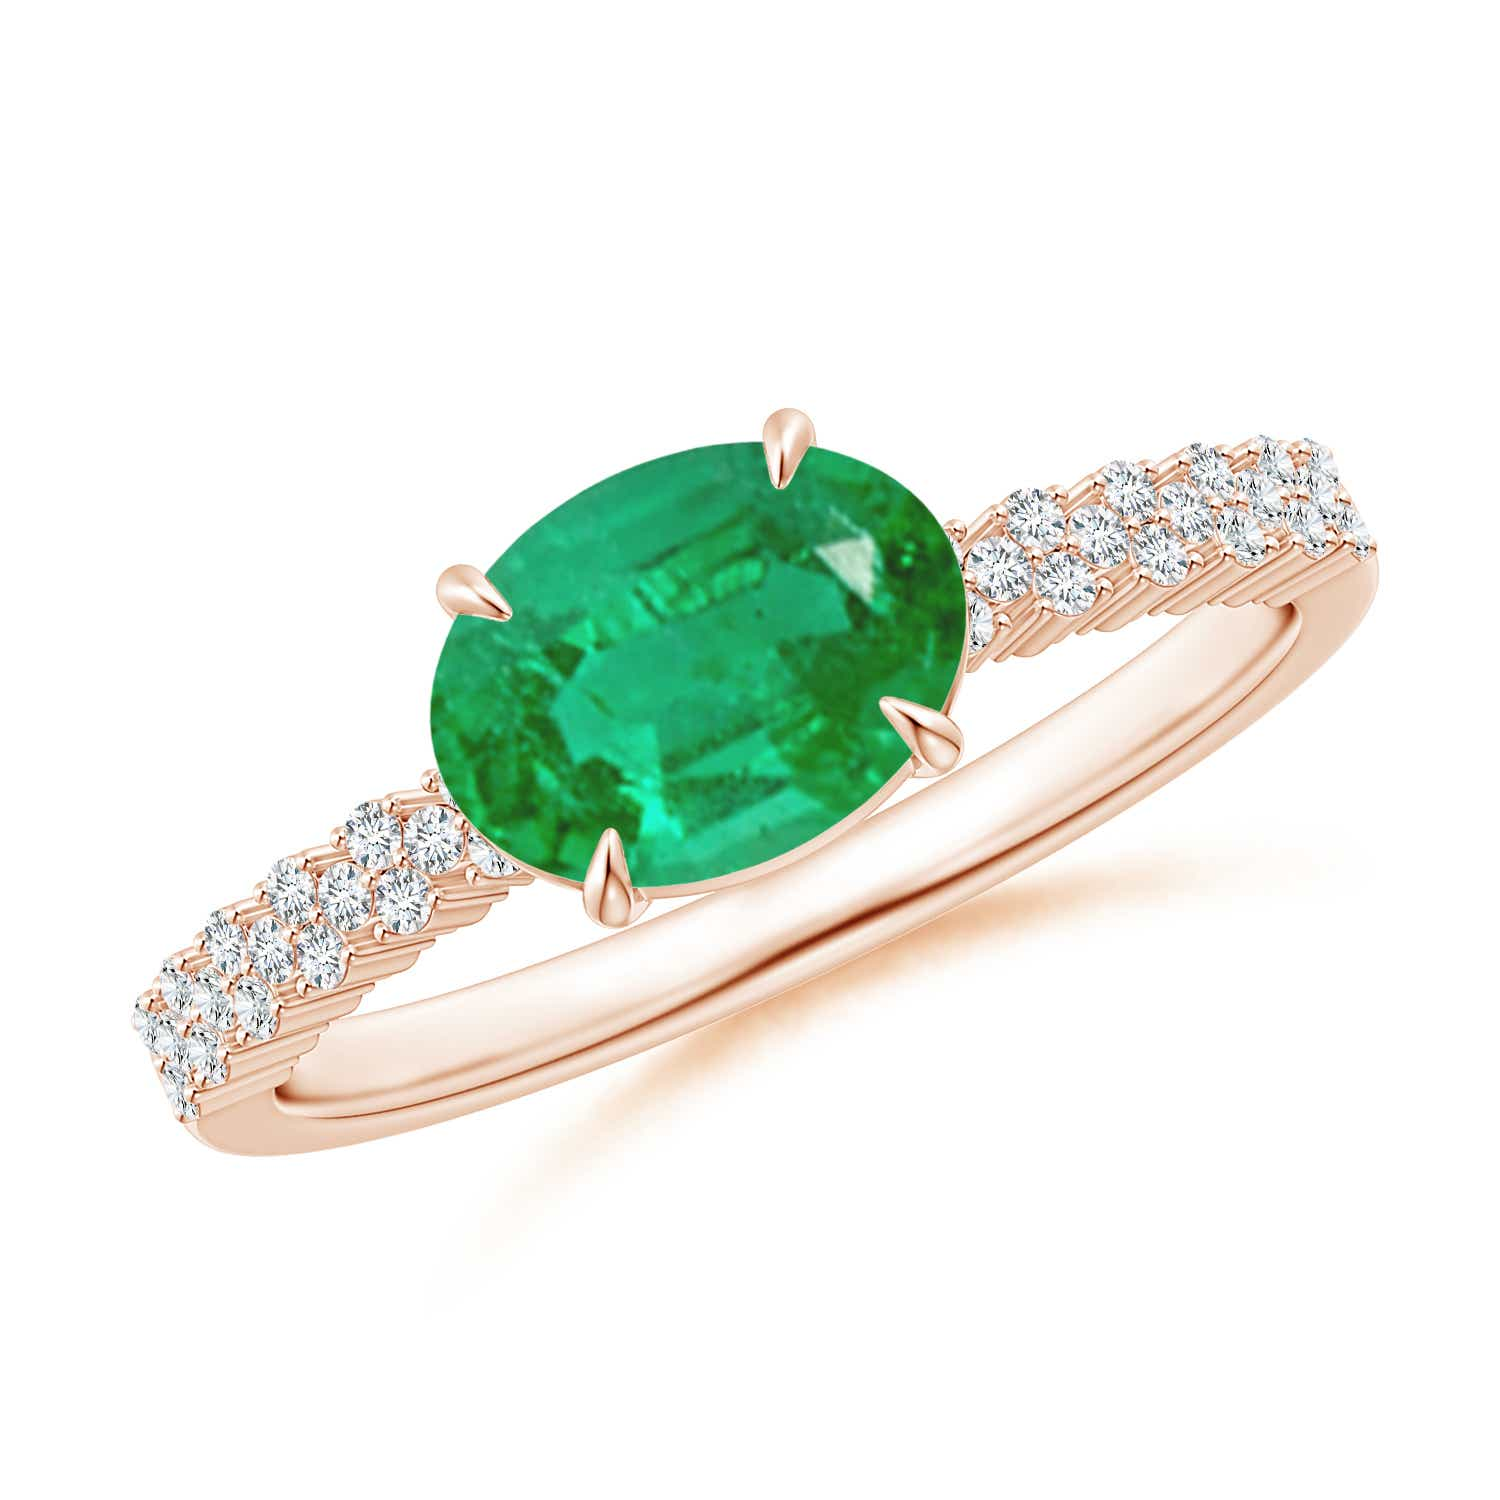 East-West Oval Emerald Ring with Diamonds